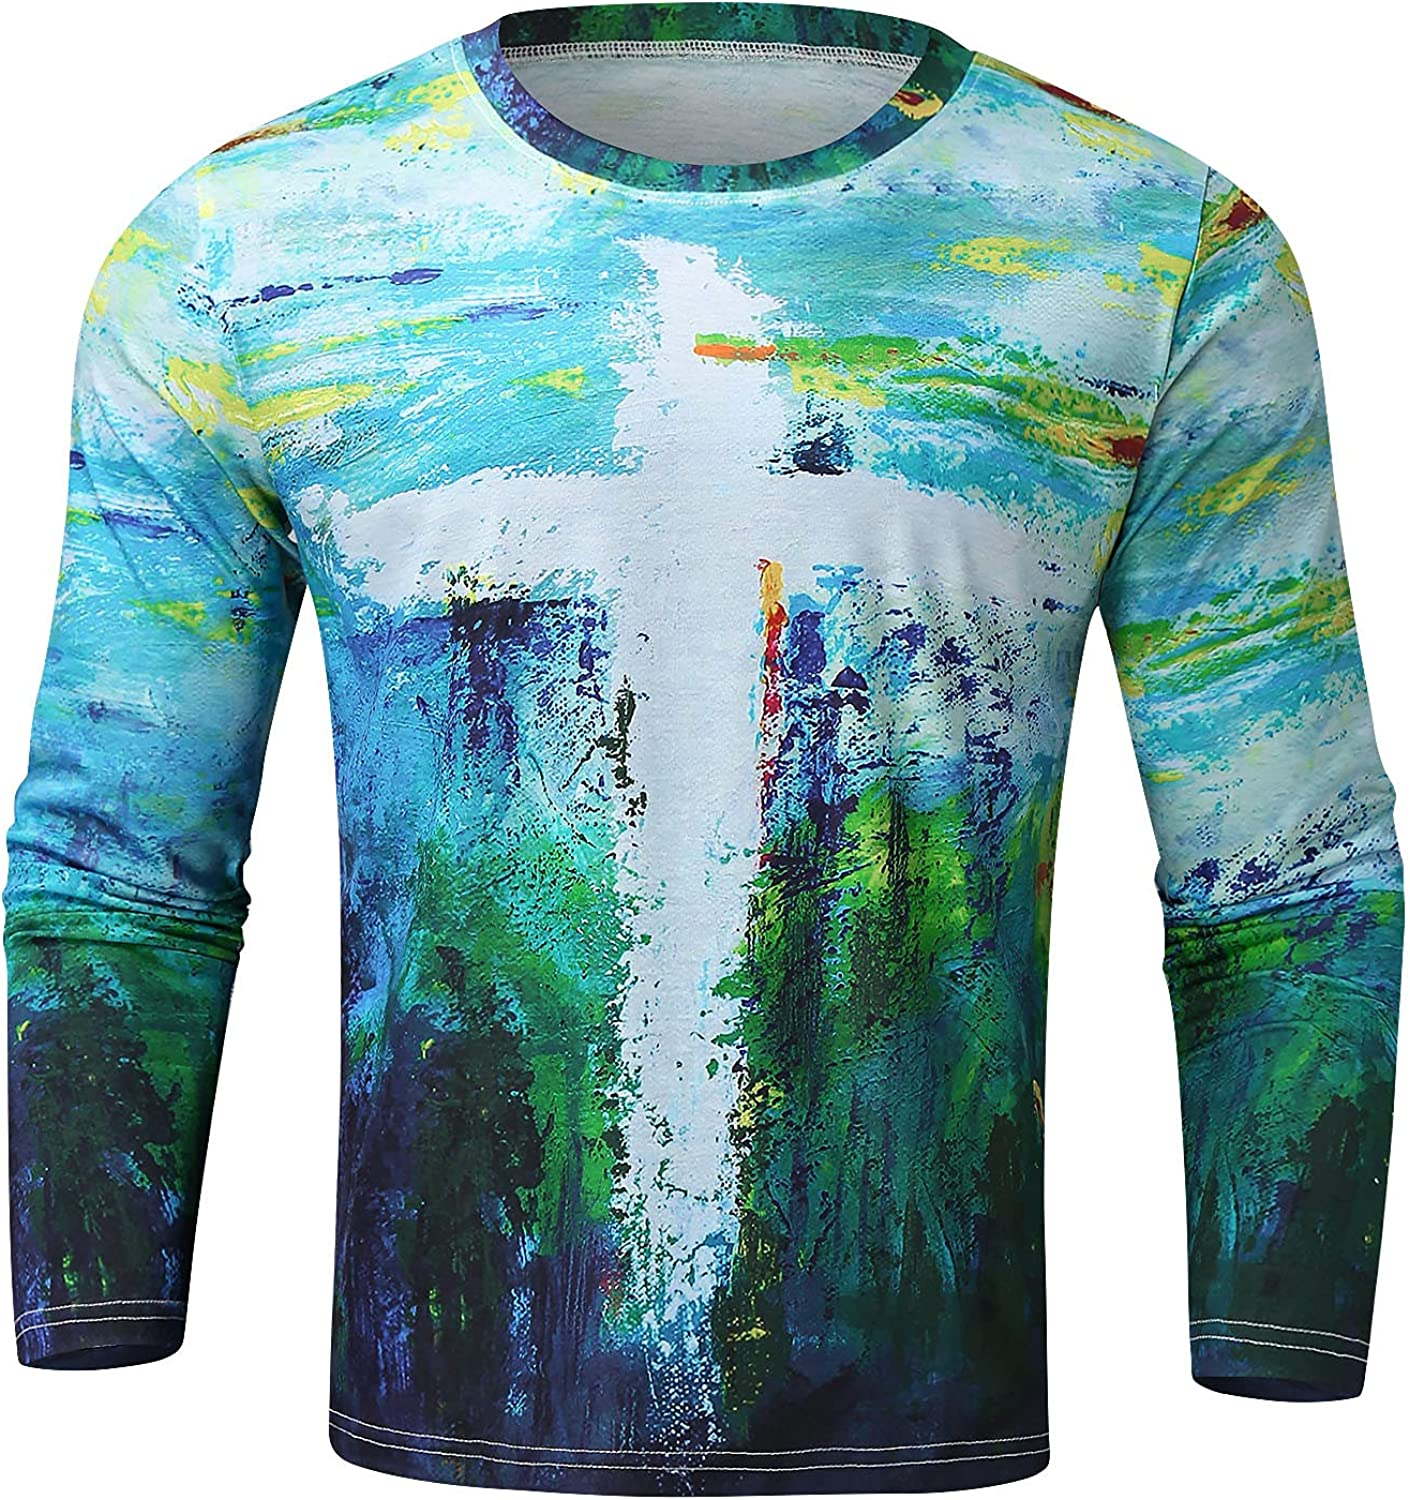 Aayomet Men's T Shirts Vintage Graphic Long Sleeve Slim Fit T-Shirt Casual Round Neck Sport Workout Athletic Tee Shirts Tops